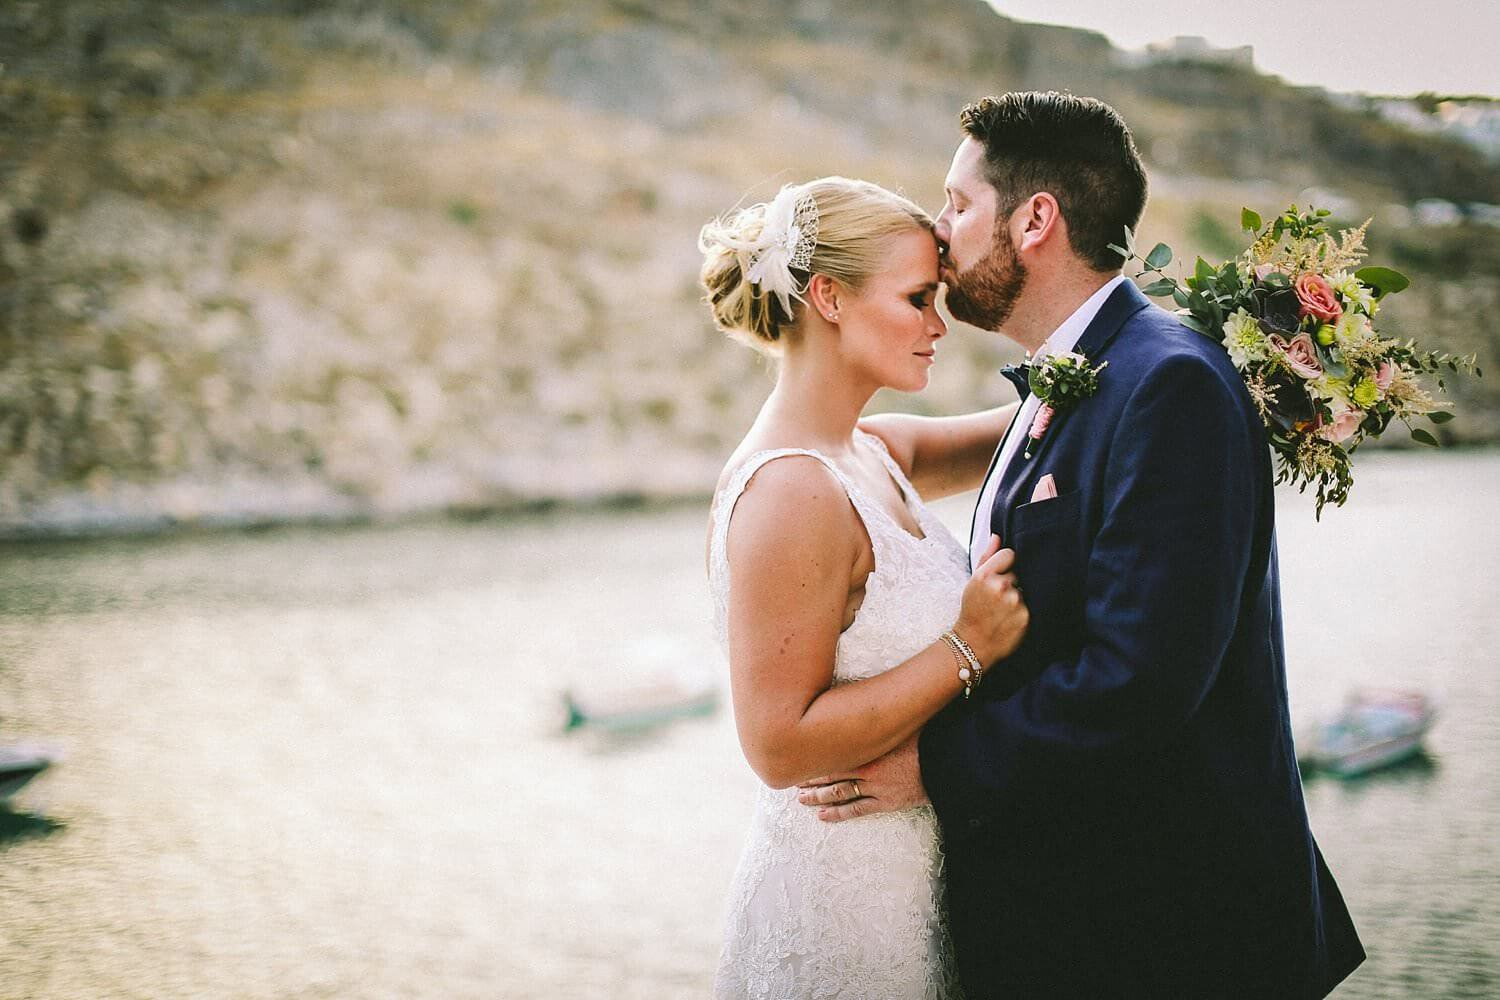 Groom kissing bride on head at sunset wedding St Pauls Bay Lindos